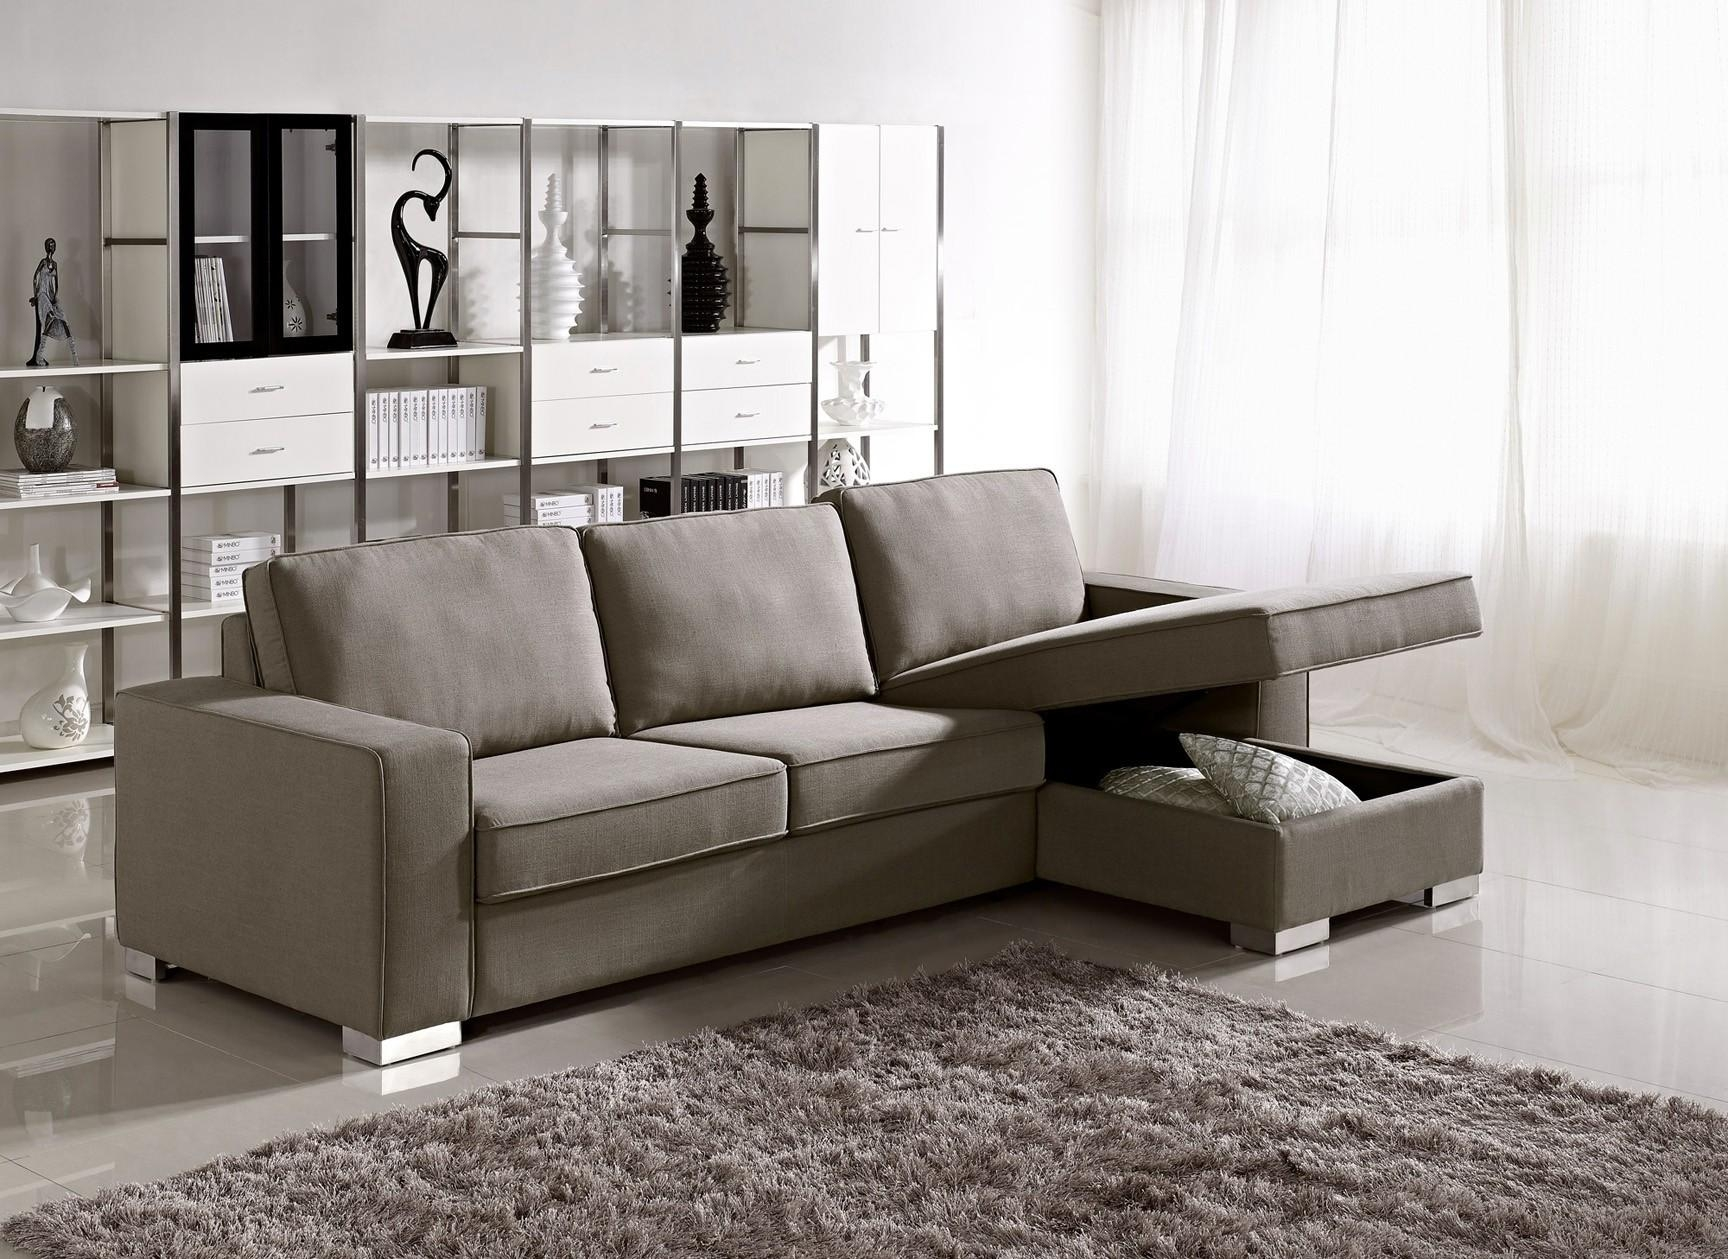 Sleeper Sofa Los Angeles With Ideas Inspiration 31694 | Kengire Regarding Los Angeles Sleeper Sofas (View 8 of 20)